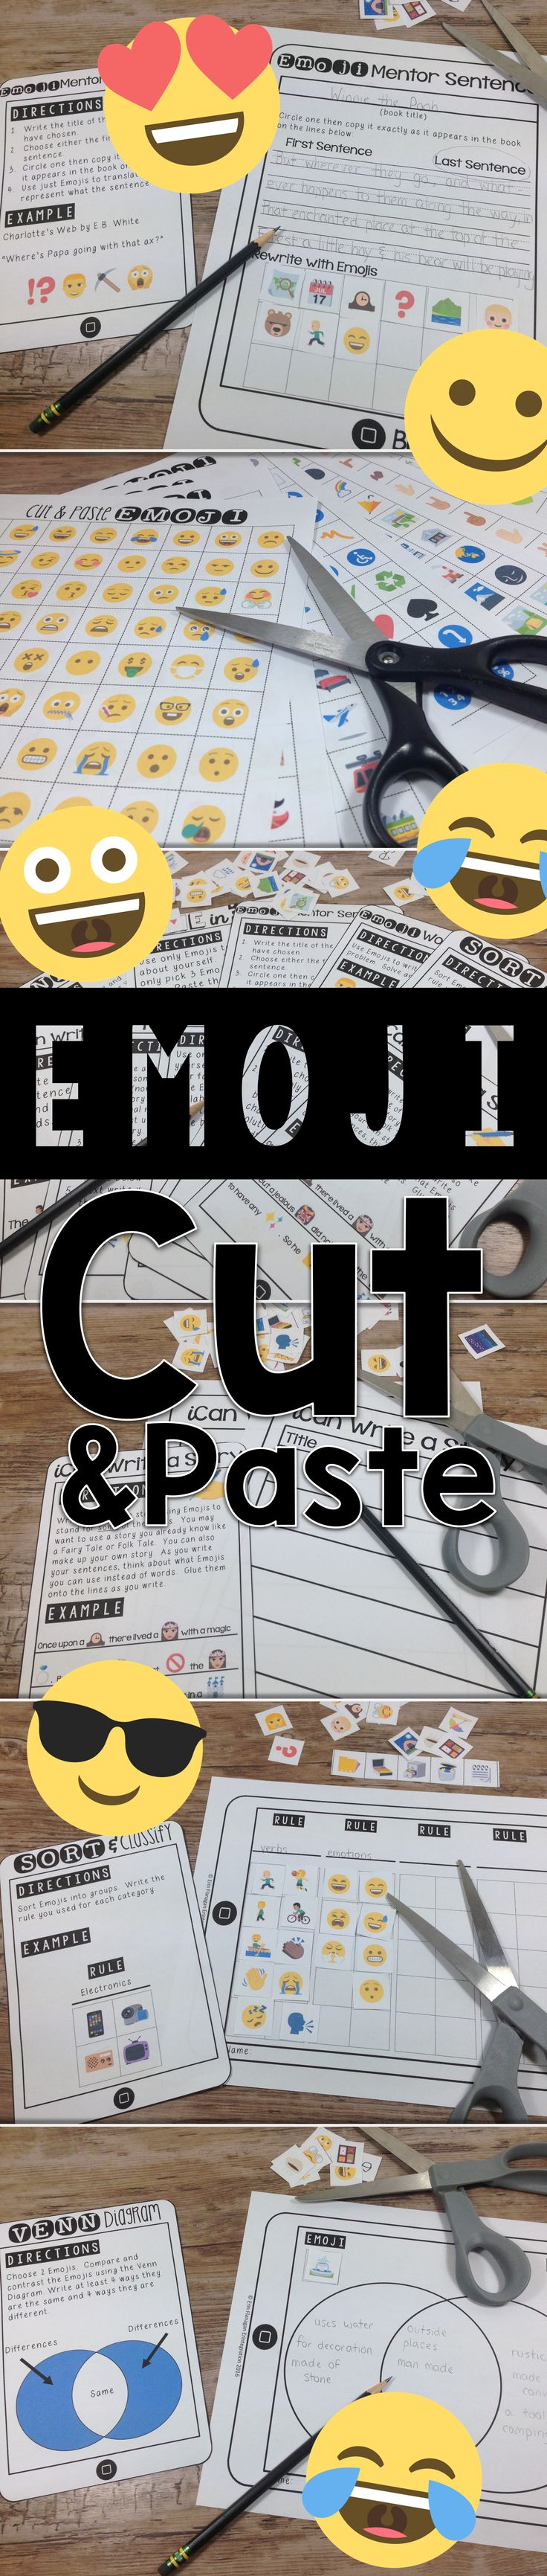 Students will love these 10 fun & low prep Emoji activities for writing, reading, math, and more using the included 1200+ Emojis to complete each activity by cutting and pasting!  Tech free Emojis for the classroom!